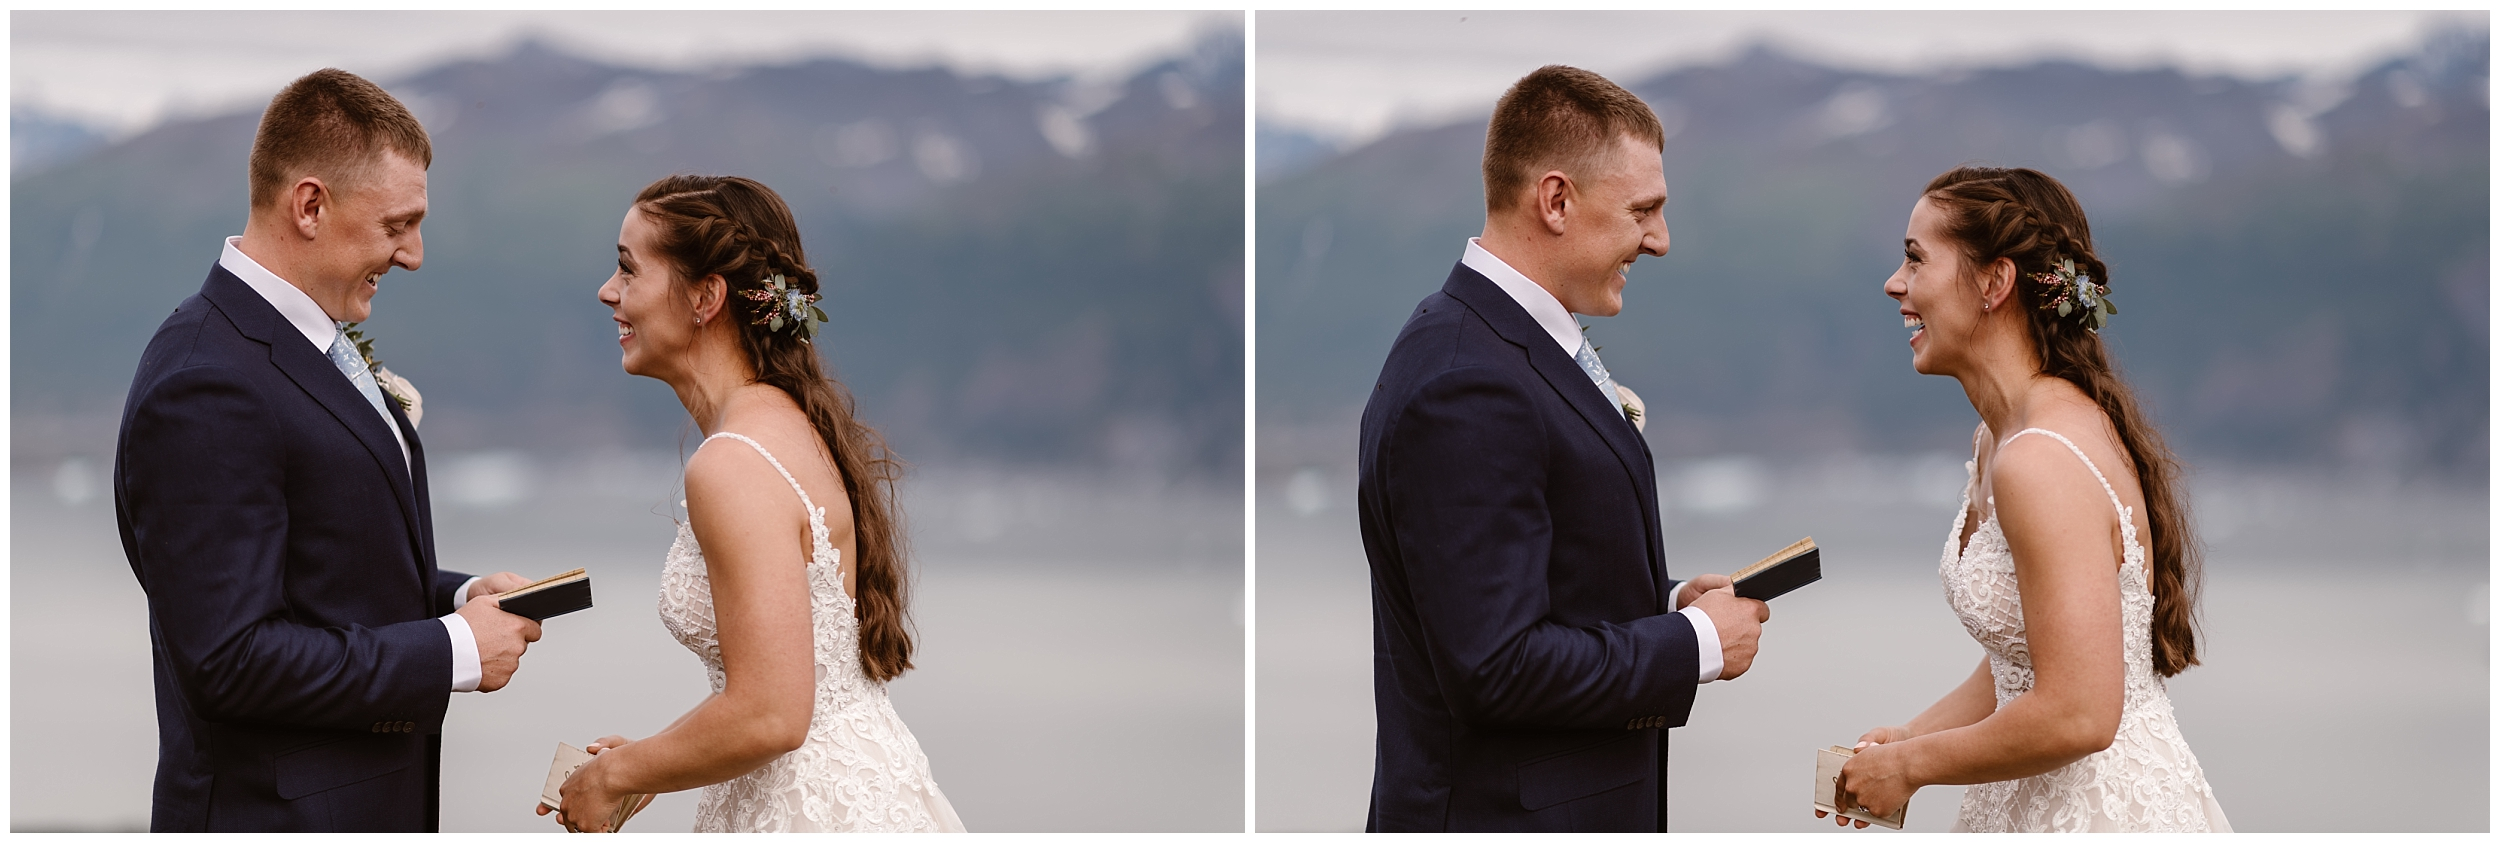 In this split image, Jordyn and Connor, the bride and groom , read their vows to each other. In the photo to the left, Connor reads his vows, looking down at his book, while Jordyn excitedly and eagerly listens. In the photo on the right, Jordyn stares at Connor as he looks up from his vows and smiles at Jordyn. In the background of this elopement photo of this Alaska destination wedding are mountains and a glaciated lake.